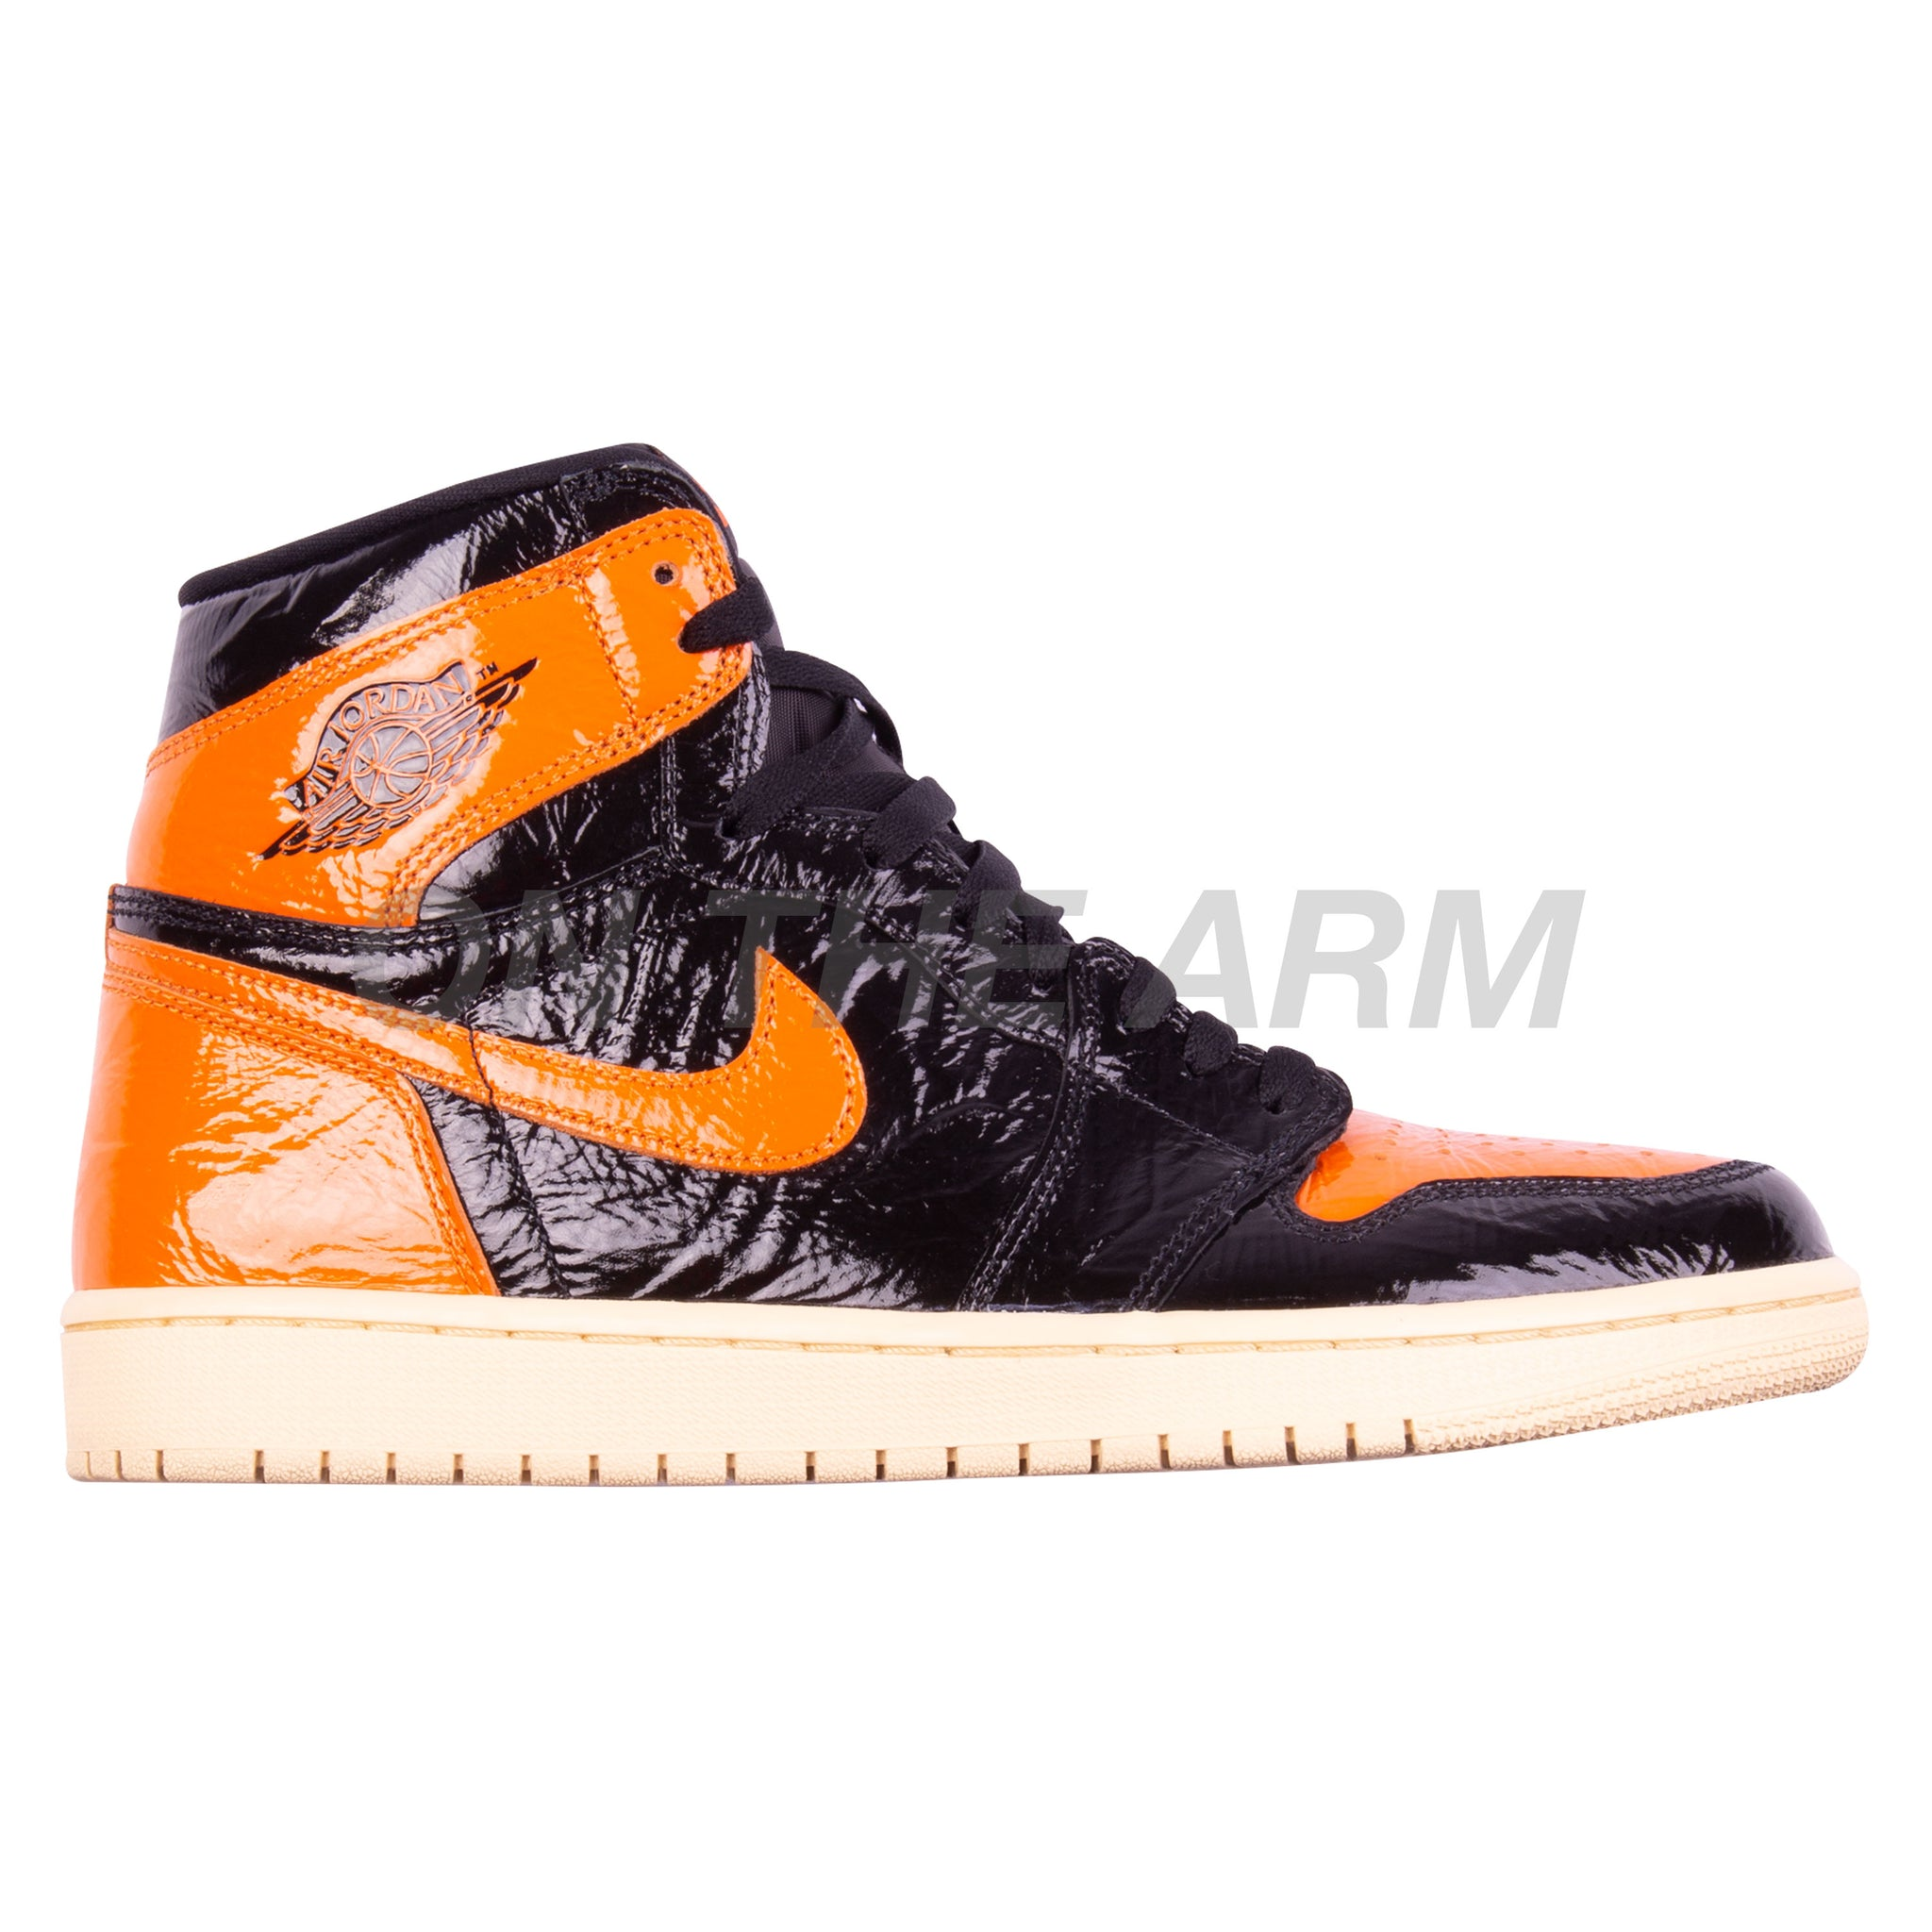 Nike Shattered Backboard 3.0 Air Jordan 1 USED